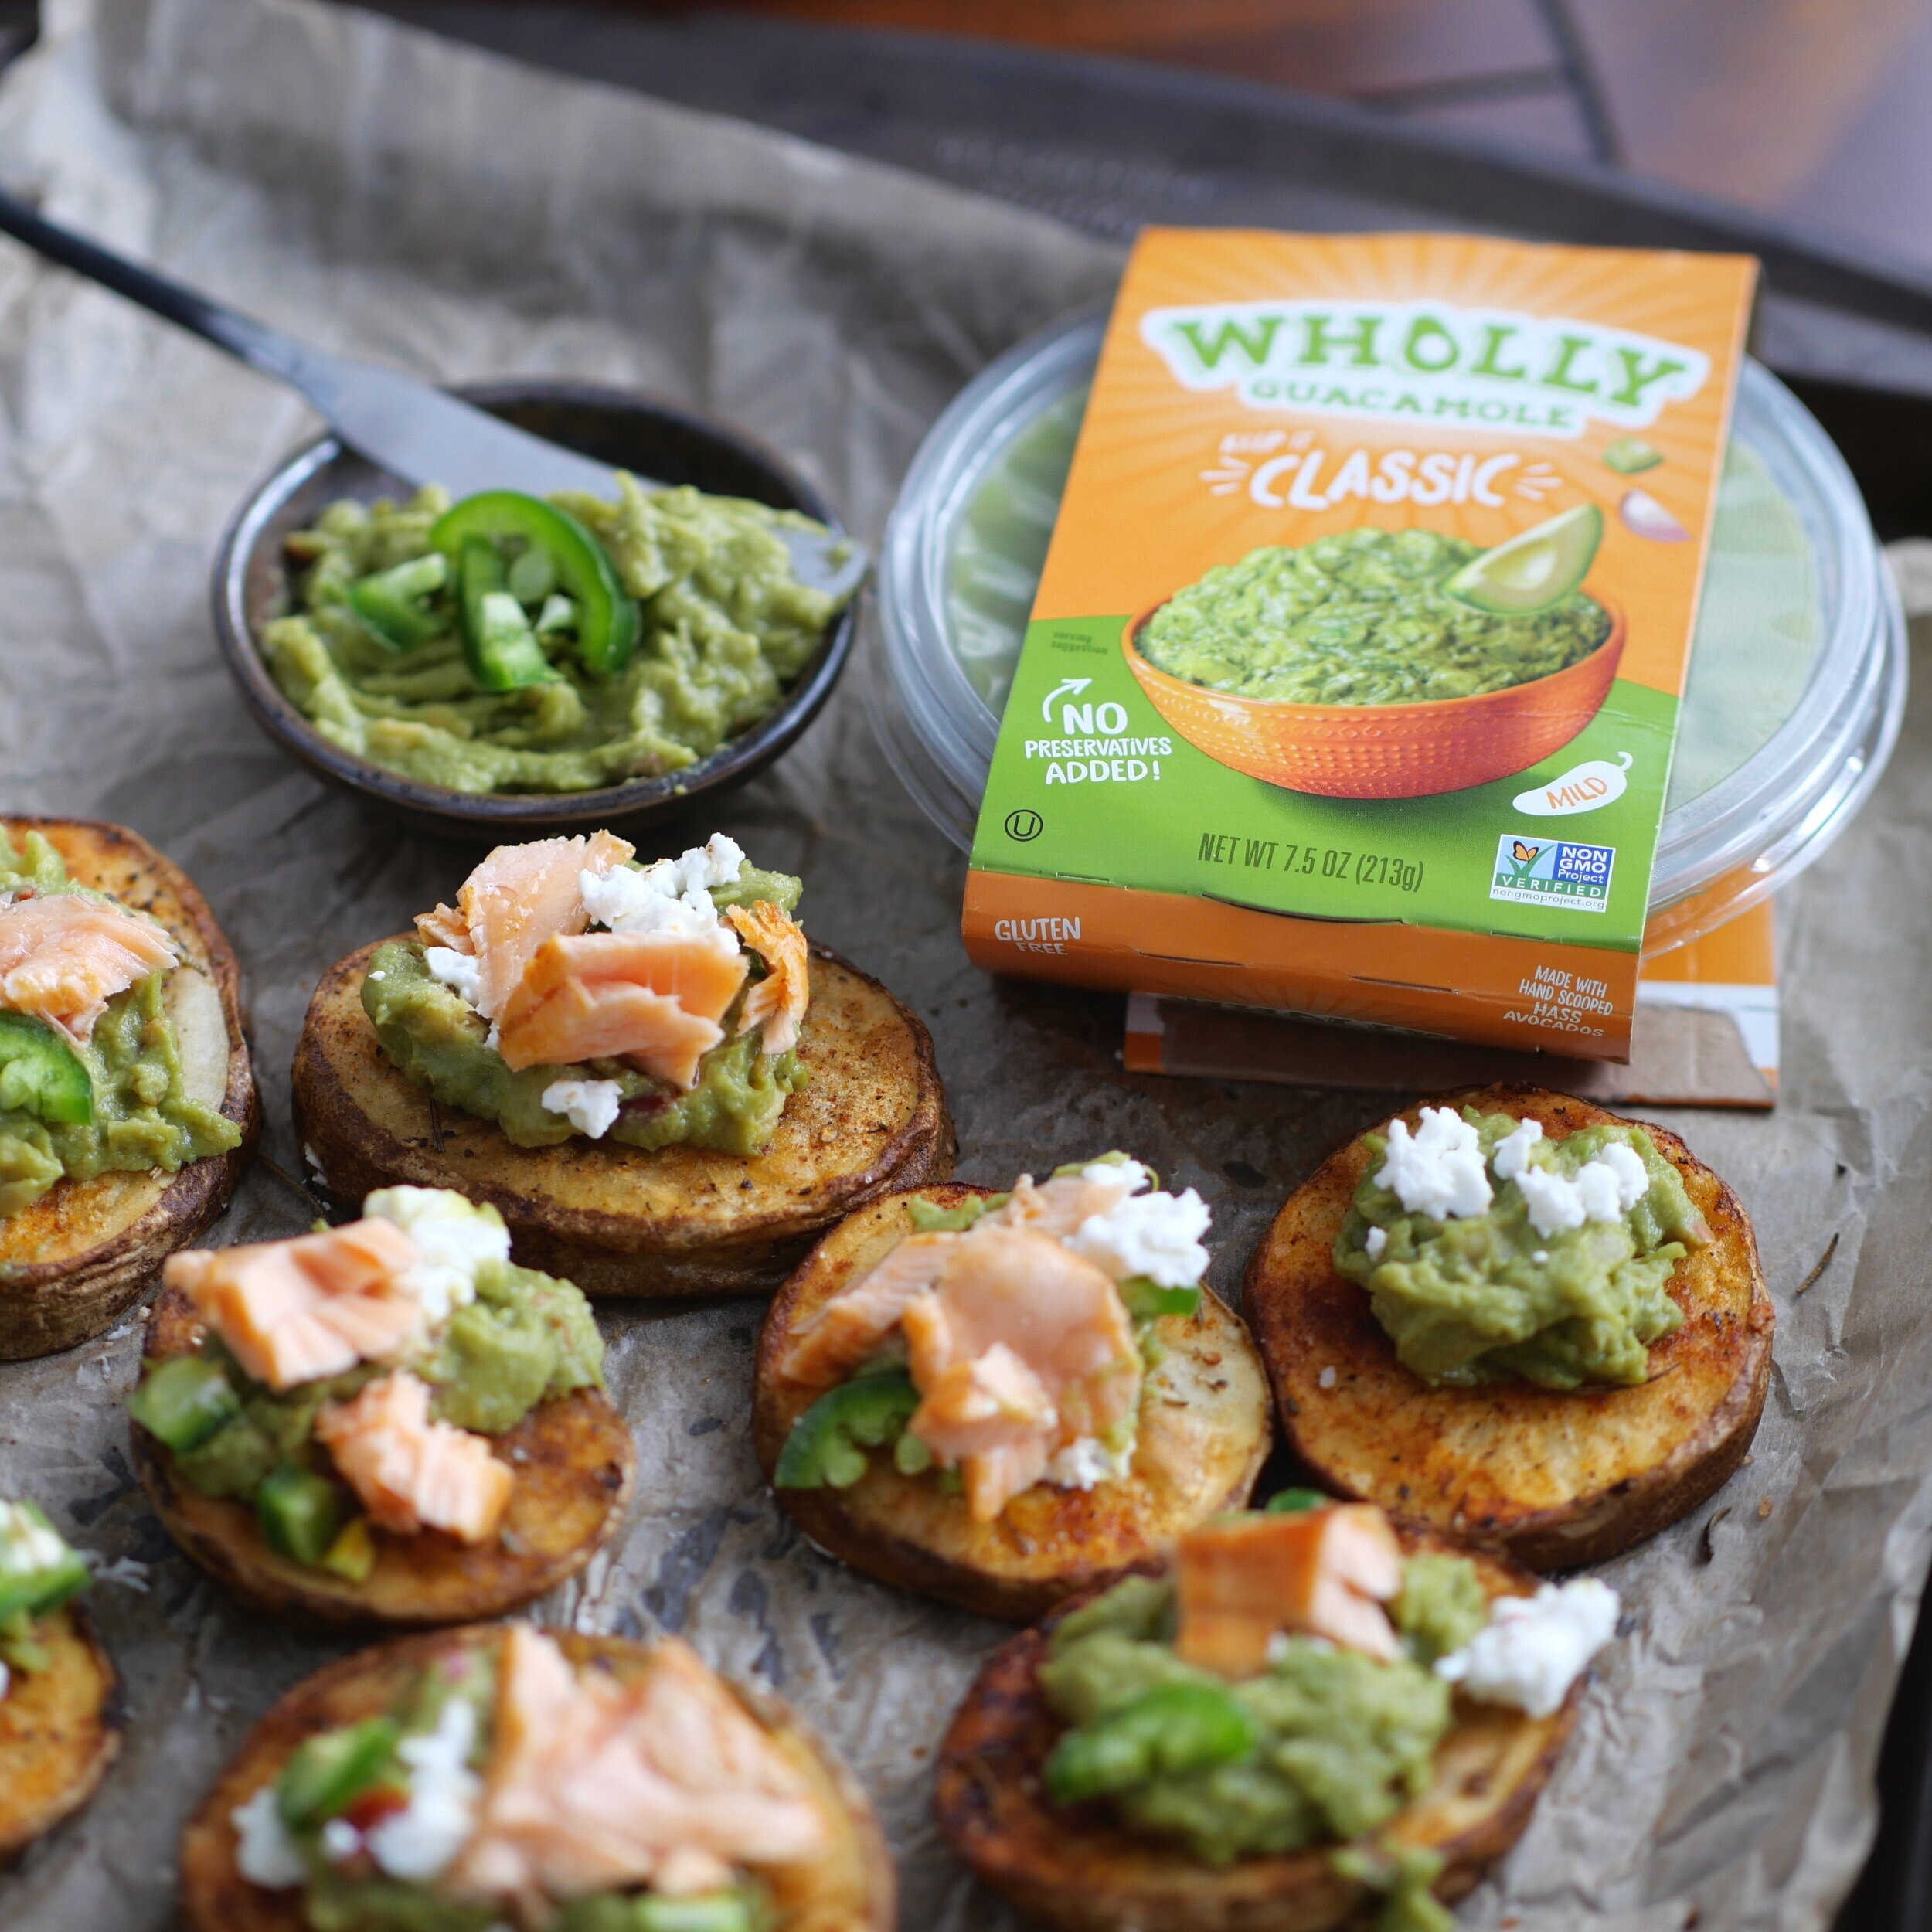 The goat cheese and salmon give these Loaded Potato Bites an adult flavor!